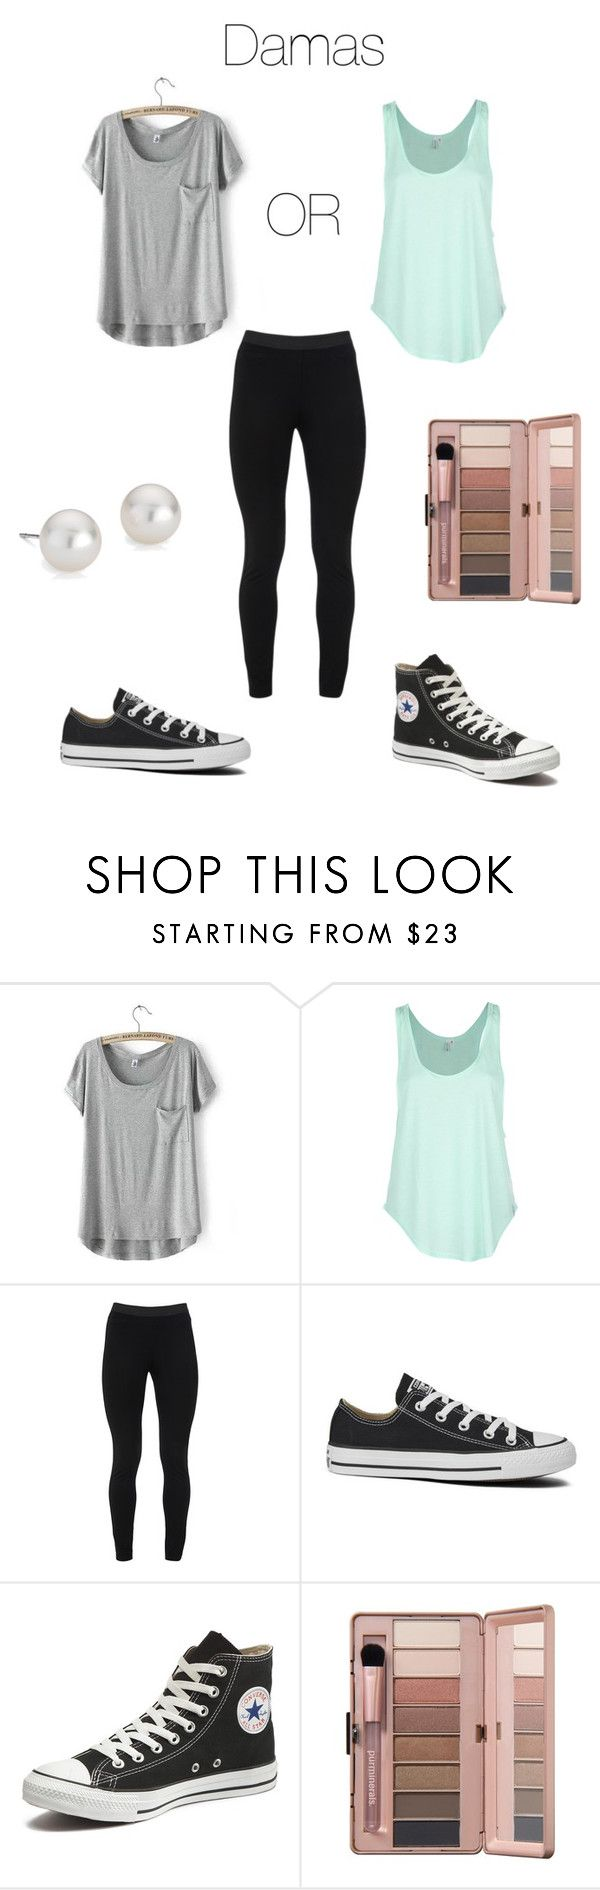 """Damas Surprise Dance Outfit"" by adriana-0611 on Polyvore featuring Rip Curl, Peace of Cloth, Converse and Blue Nile"